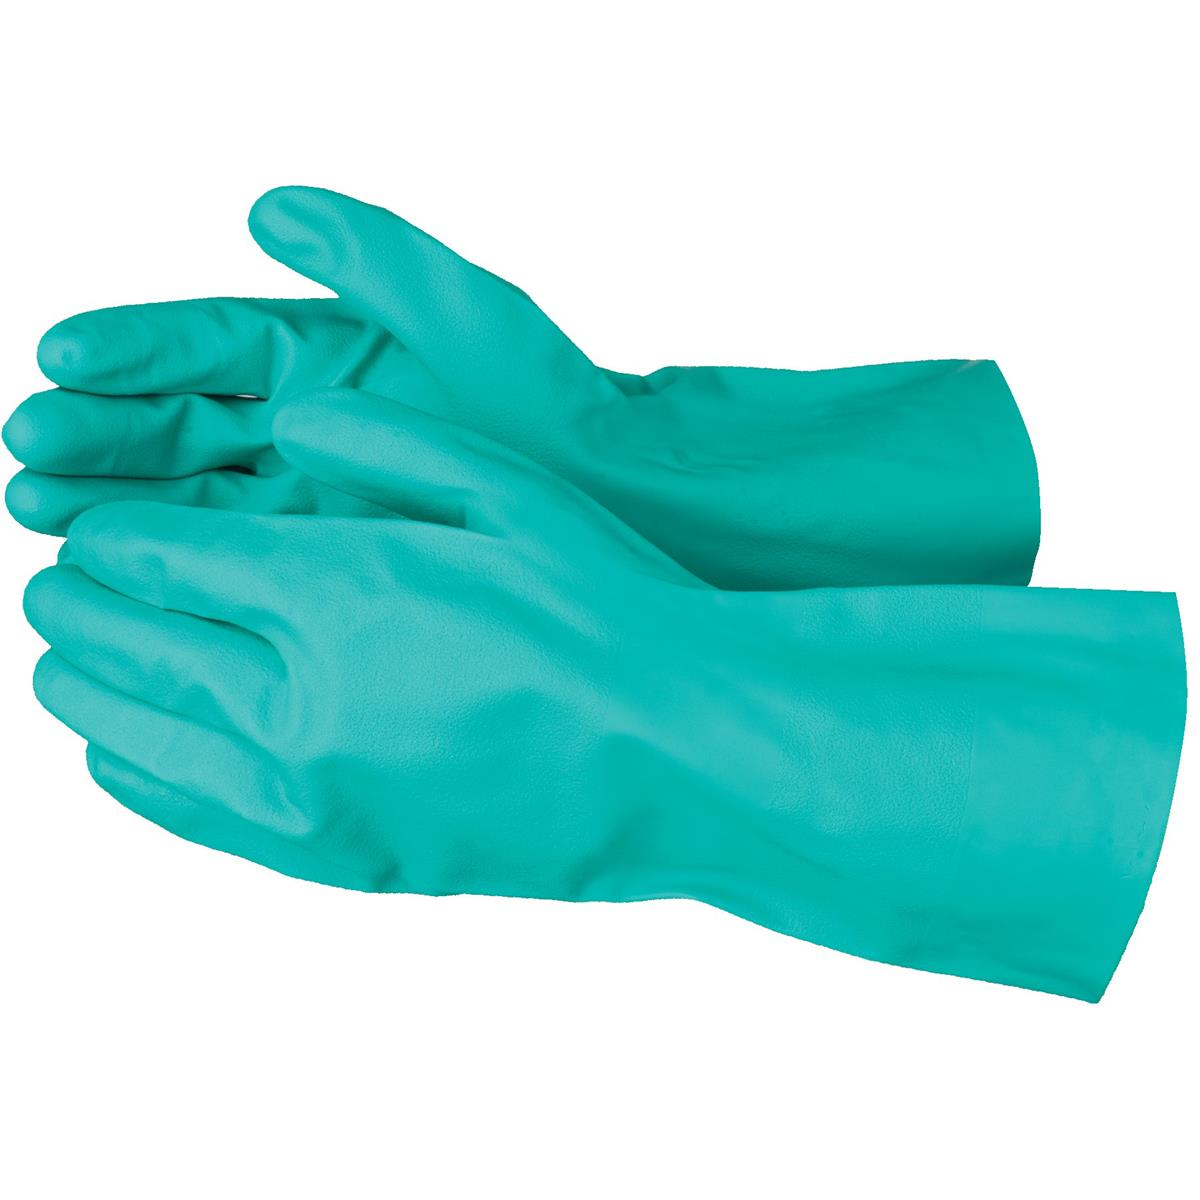 GEMPLER'S 15-mil, Unlined, Nitrile Gloves